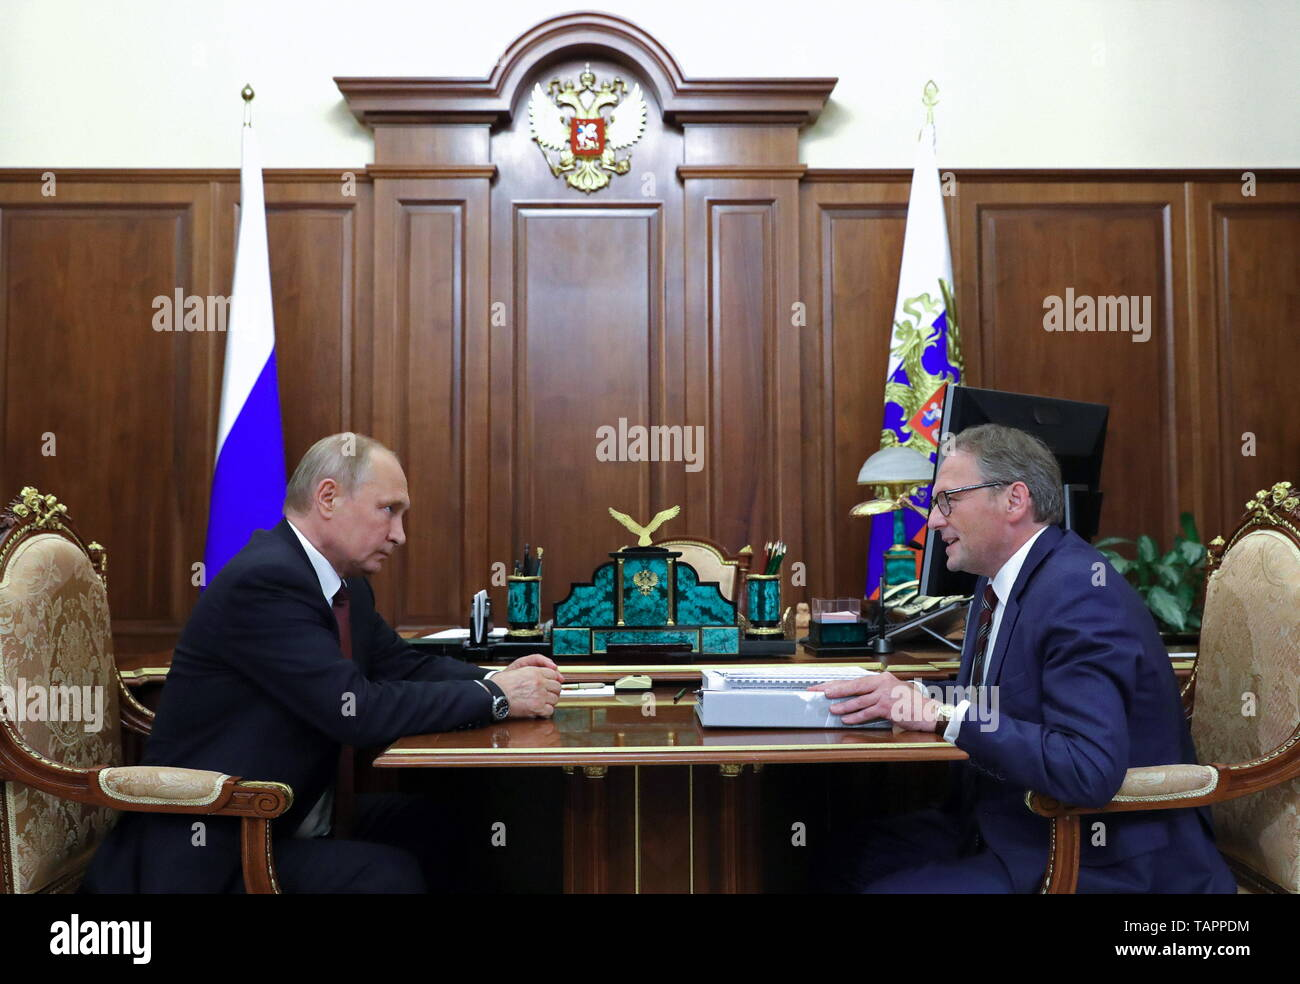 Moscow, Russia. 27th May, 2019. MOSCOW, RUSSIA - MAY 27, 2019: Russia's President Vladimir Putin (L) and Russian Presidential Commissioner for Entrepreneurs' Rights Boris Titov talk during a meeting at the Moscow Kremlin. Mikhail Klimentyev/Russian Presidential Press and Information Office/TASS Credit: ITAR-TASS News Agency/Alamy Live News - Stock Image